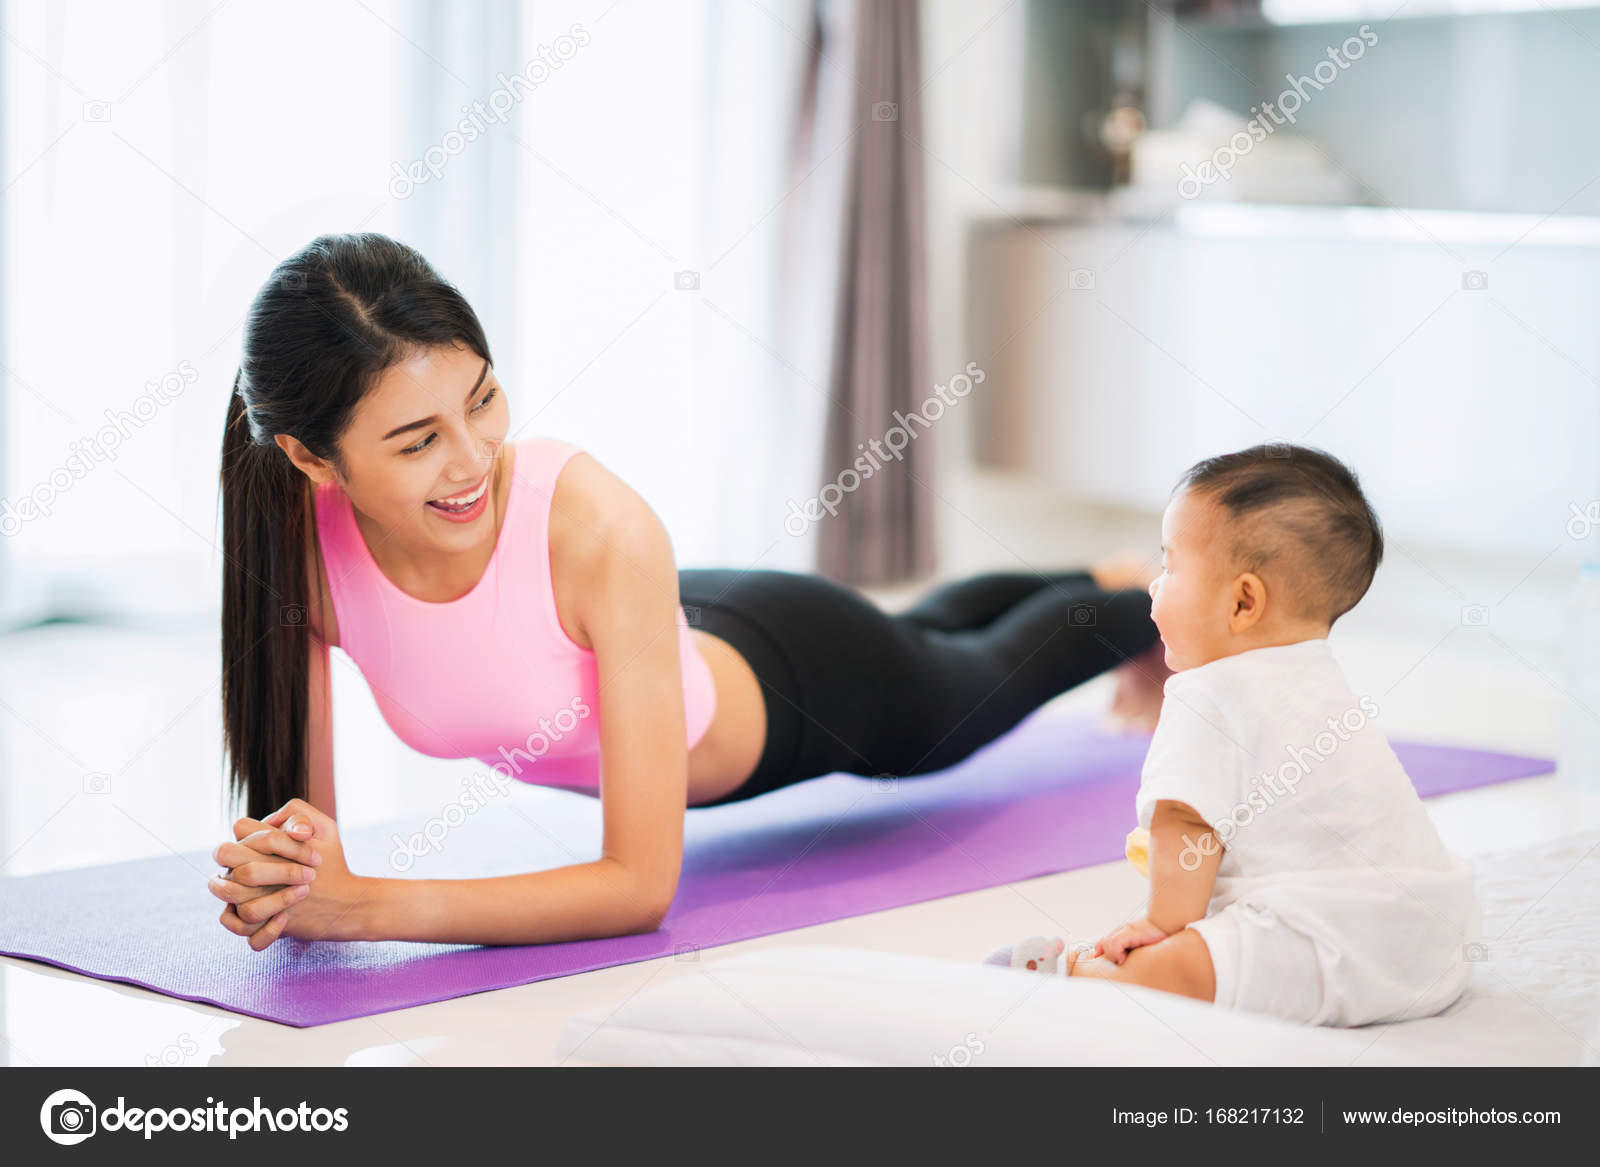 Asian Mother Fit And Play Yoga For Lose Weight After Delivery A New Born Baby In Home Mom Exercise Healthy Concept Photo By Anekoho